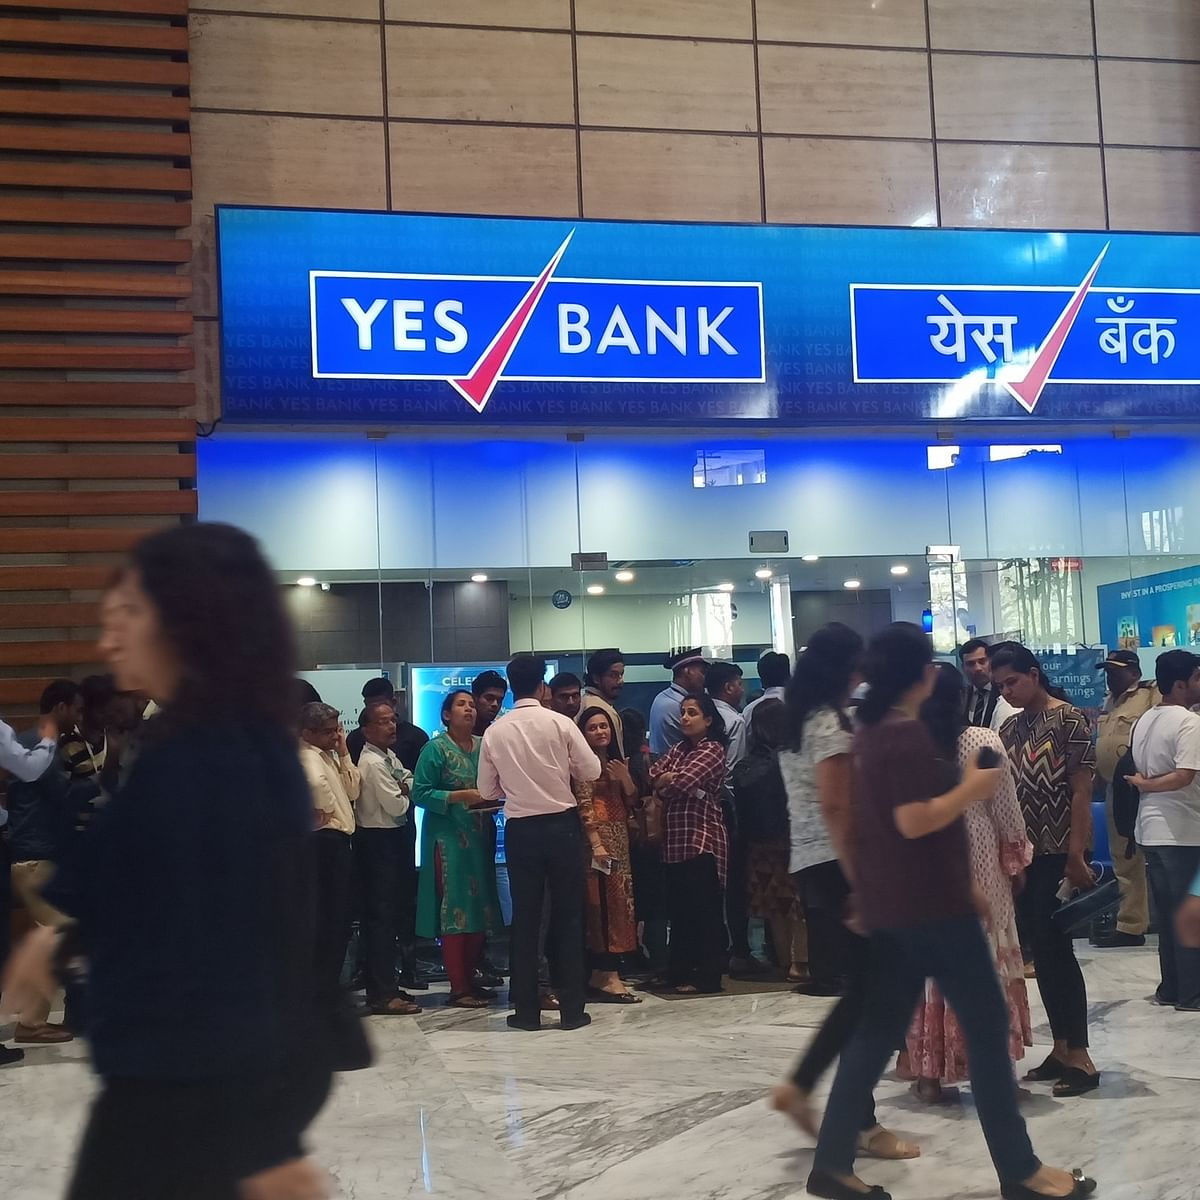 Yes Bank Branch at Yes Bank registered office building (Photo courtesy- social media)